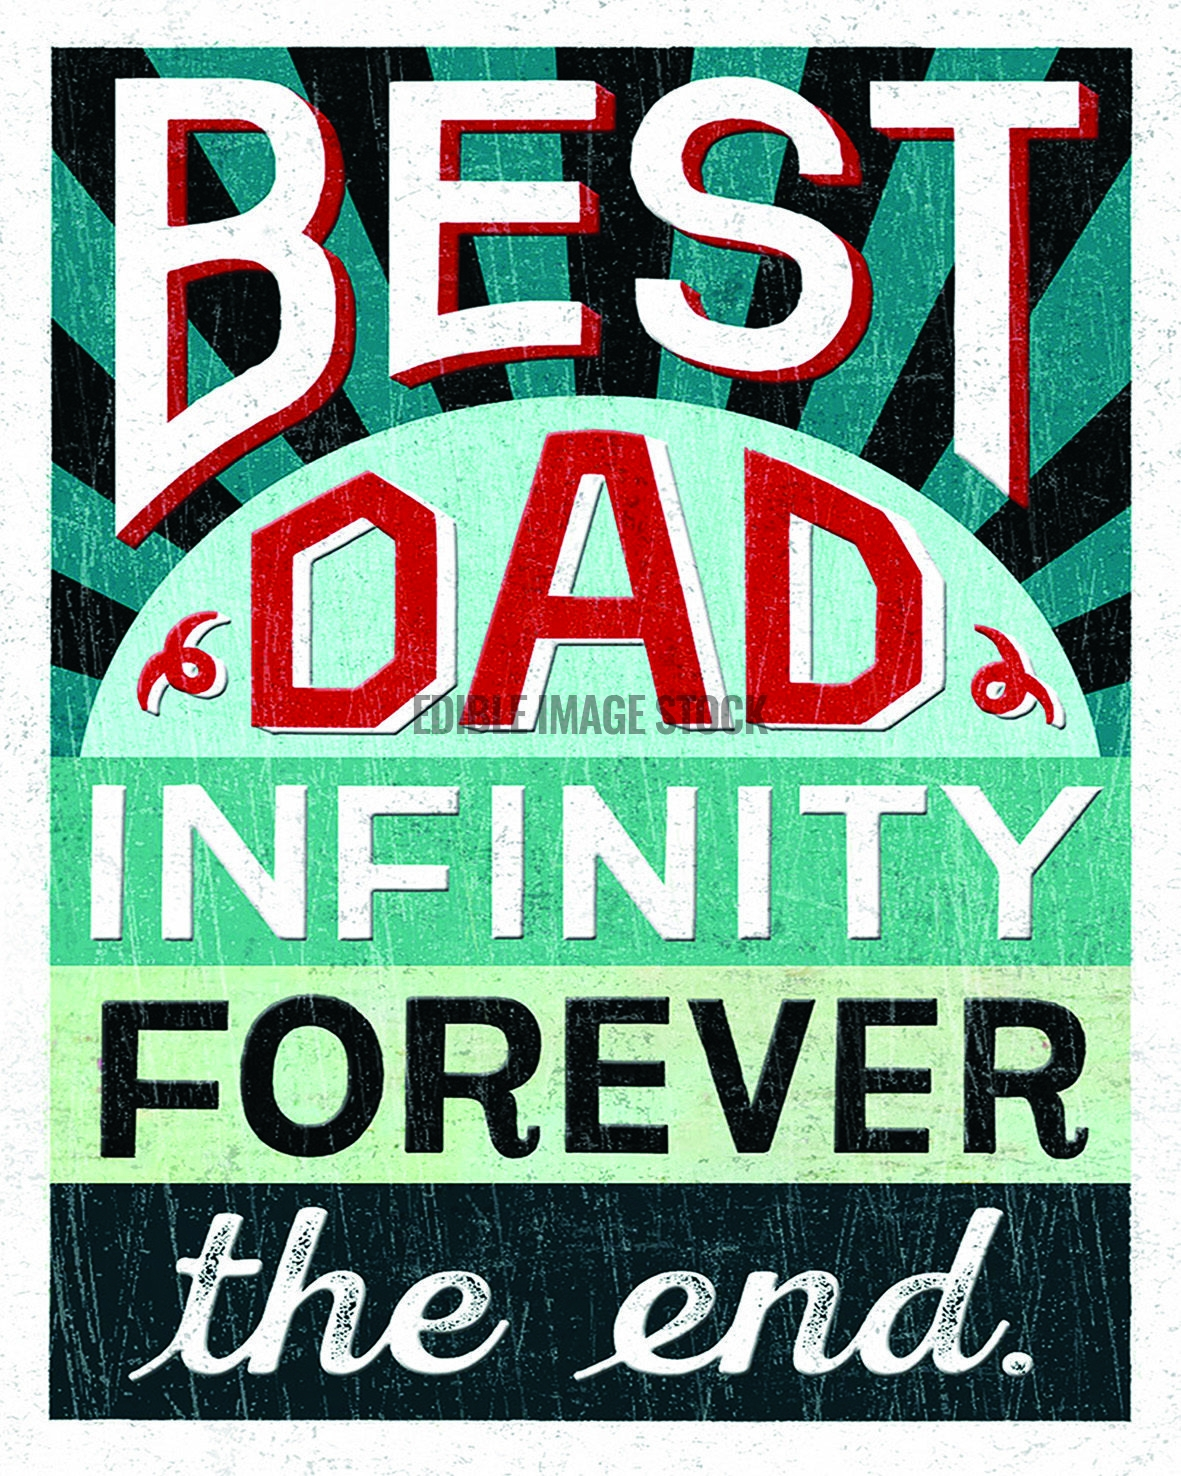 Fathers Day infinity